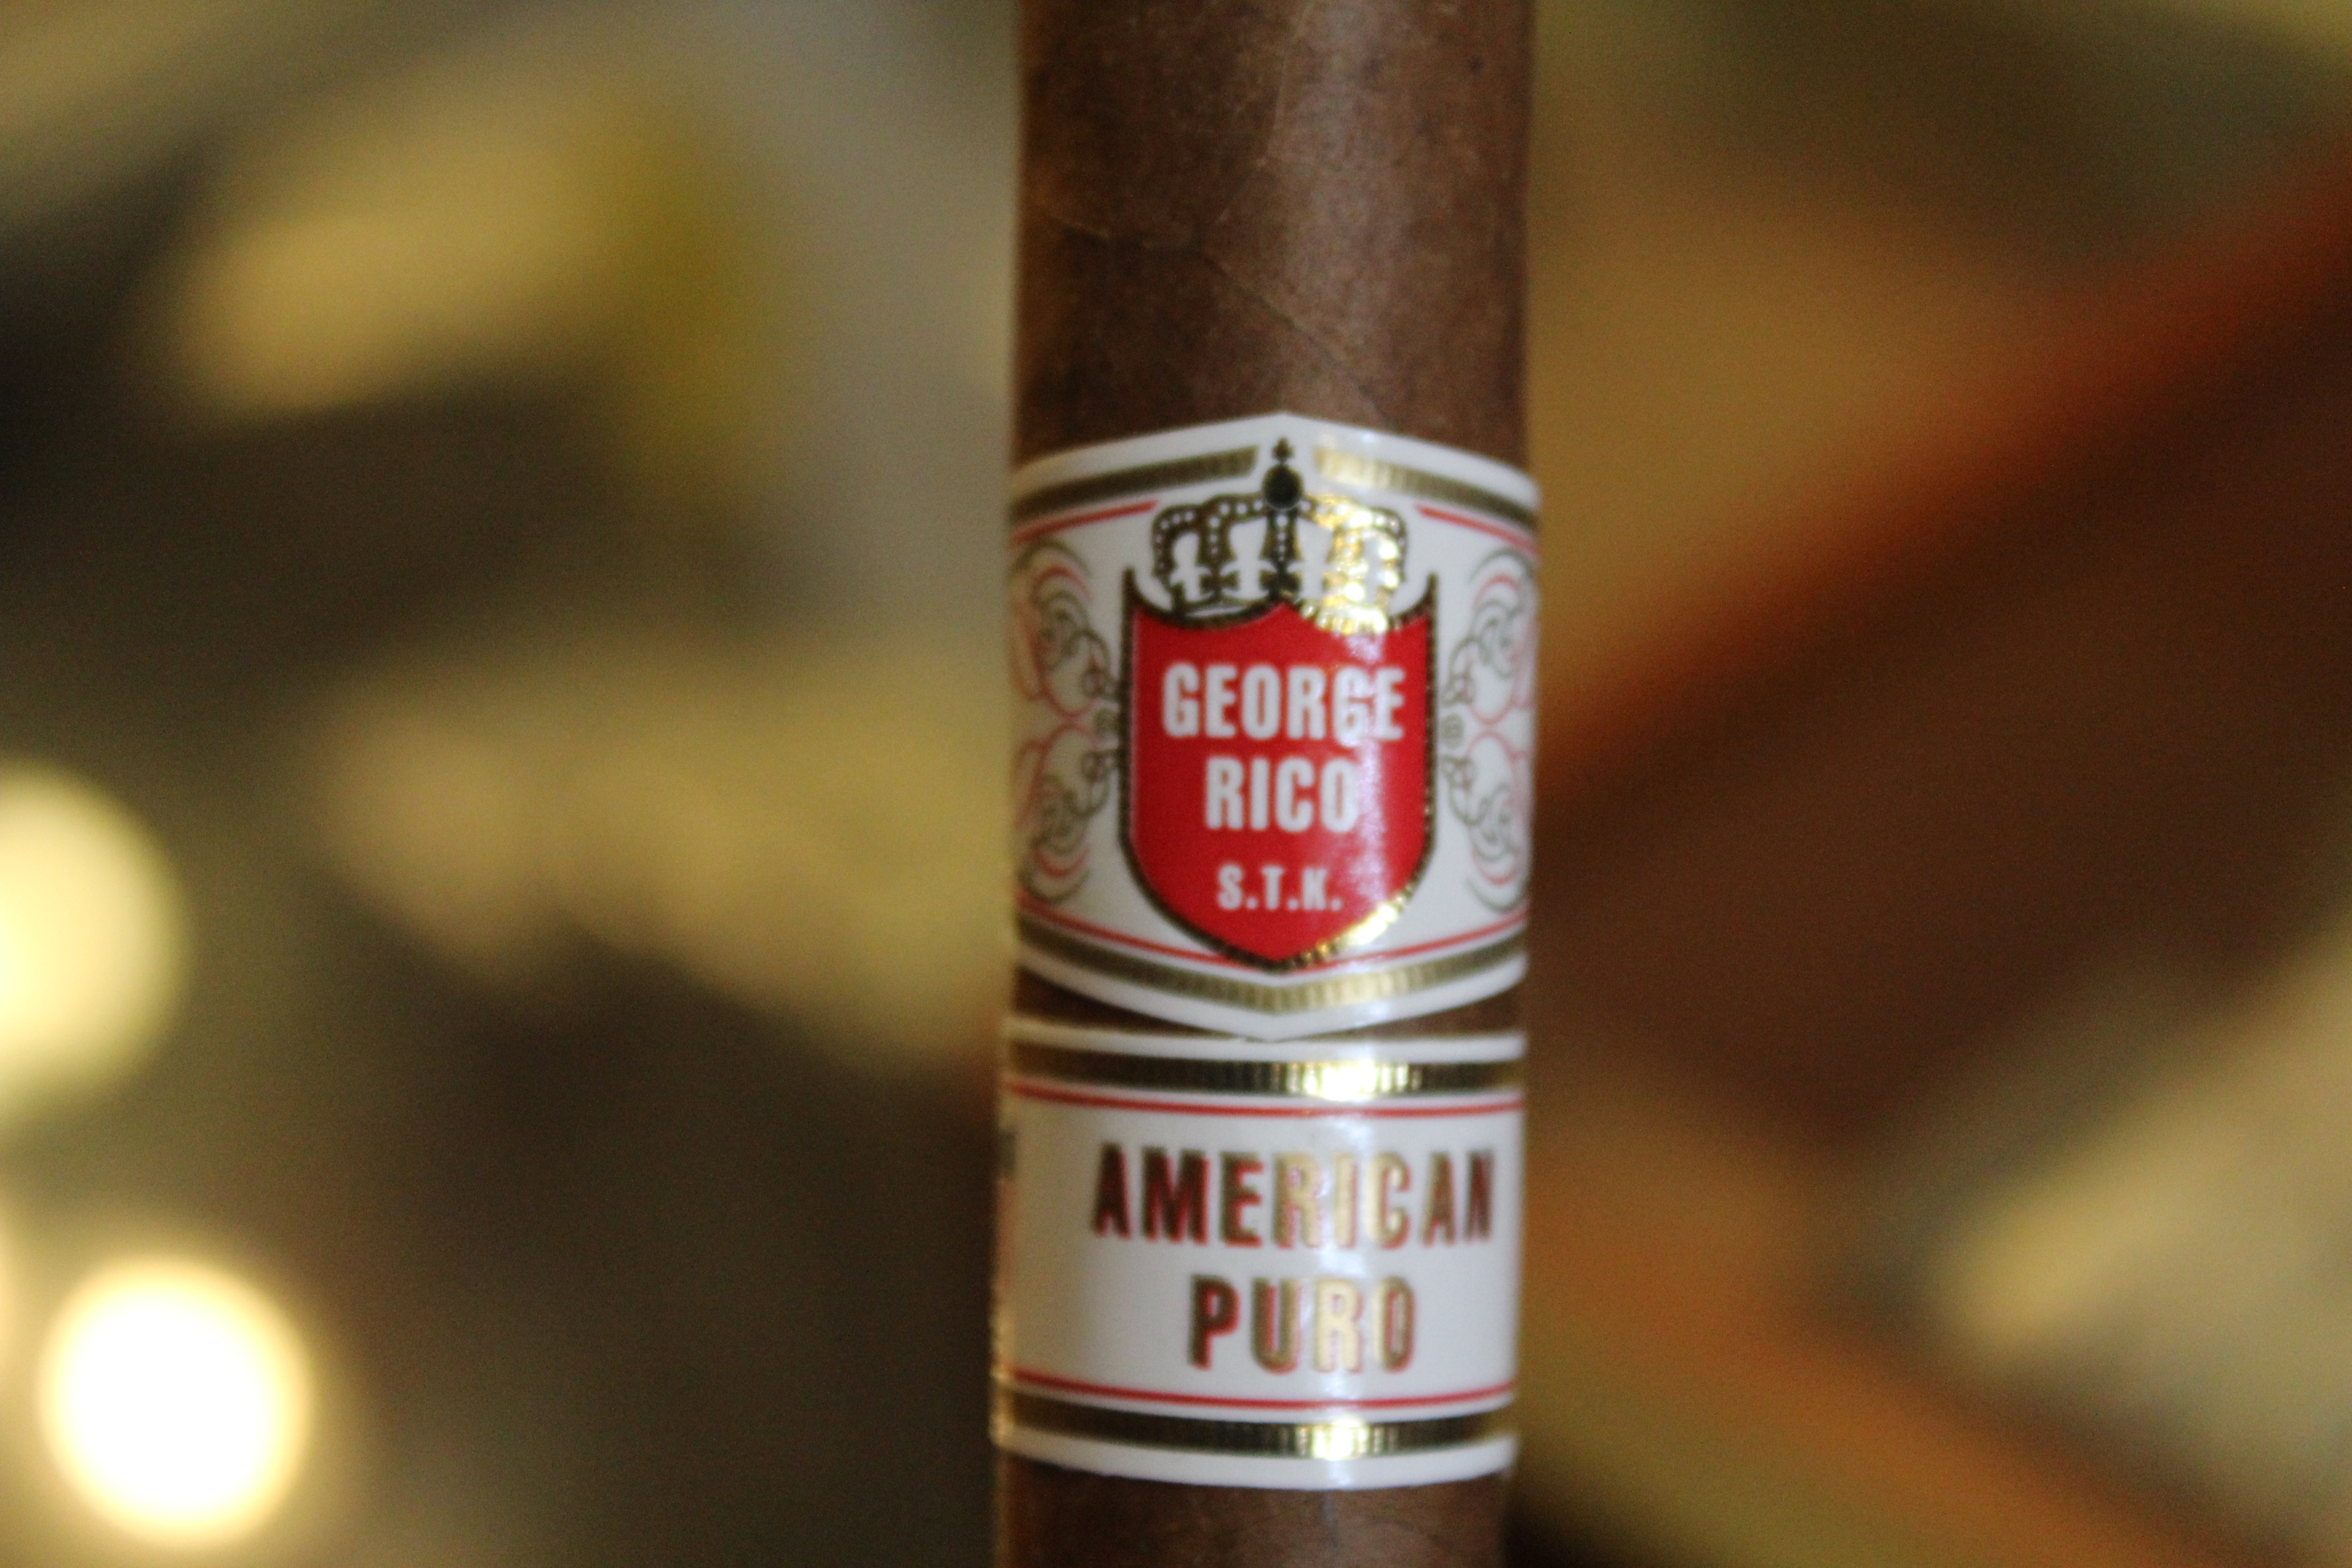 George Rico S.T.K. American Puro Robusto – Cigar Review